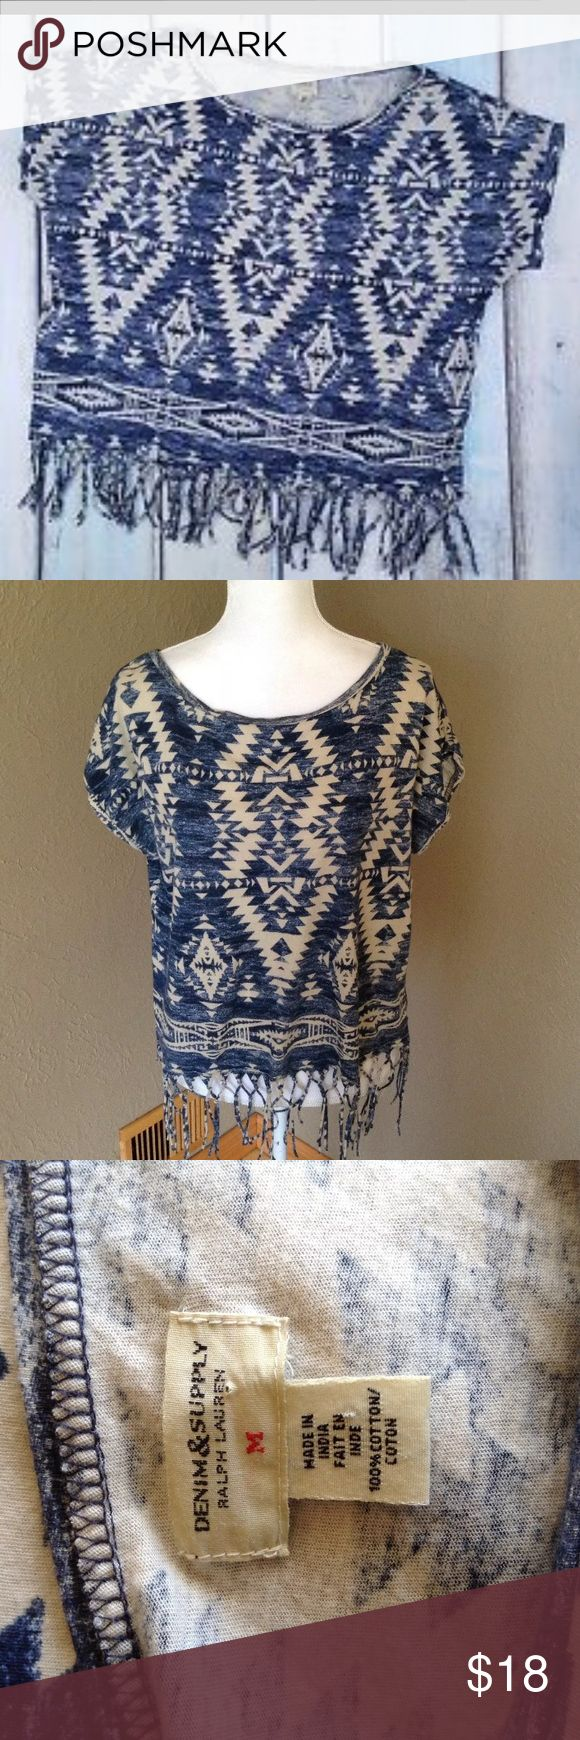 Ralph Lauren Denim supply s/s fringe Aztec Blouse Please see photos for all measure and detail prior to purchase. 21 inches in length AT Hem.. not including fringe  This item was pre owned and gently worn. It comes from a smoke free home. There are no holes, rips, tears or stains to note. Fast shipping! Buy with confidence! Thanks for looking!! Denim & Supply Ralph Lauren Tops Blouses